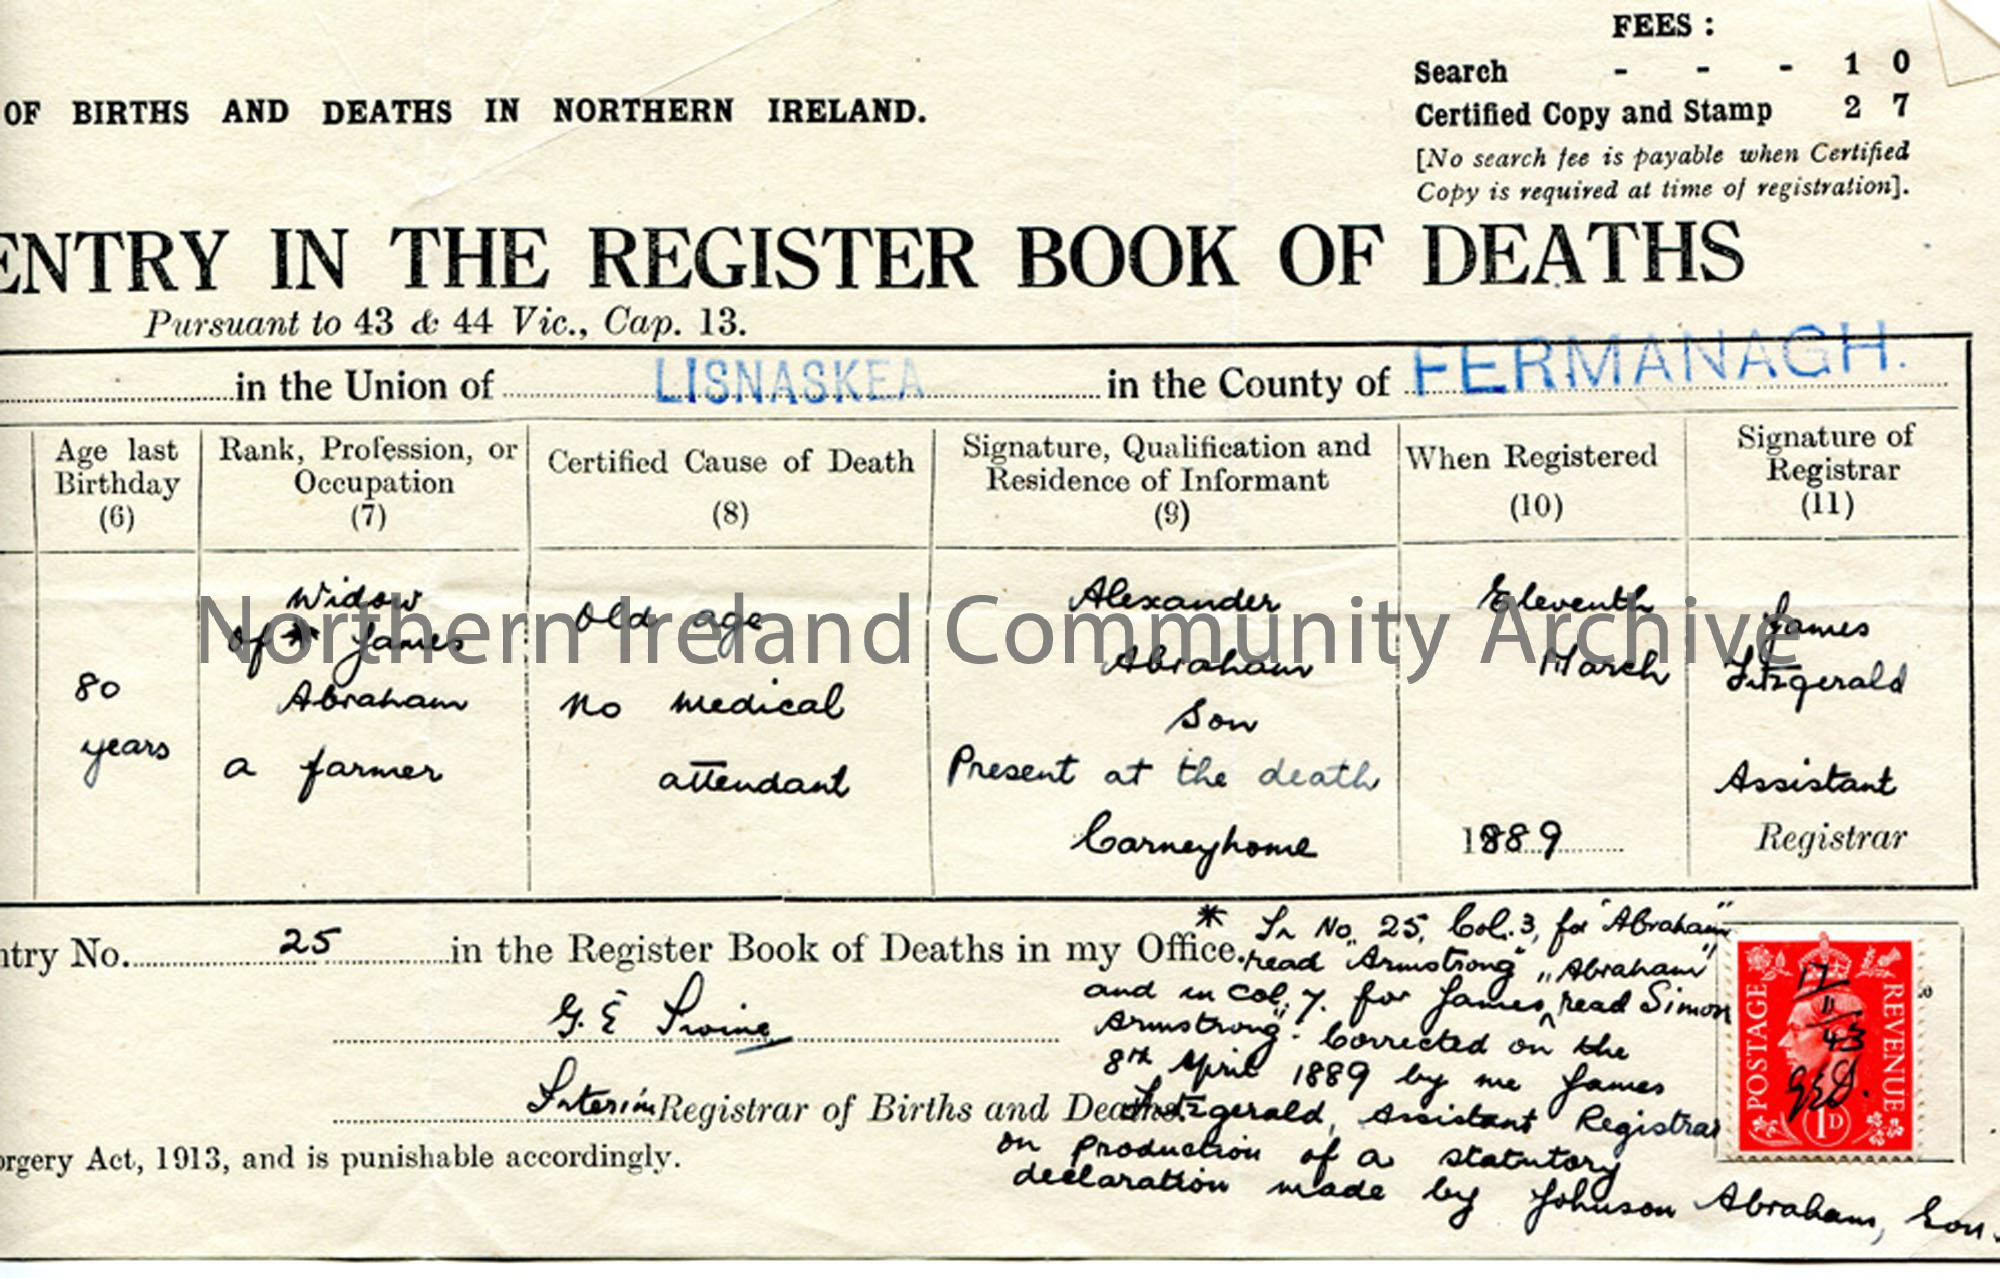 Death Certificate of Maria Abraham, Fermanagh (2)